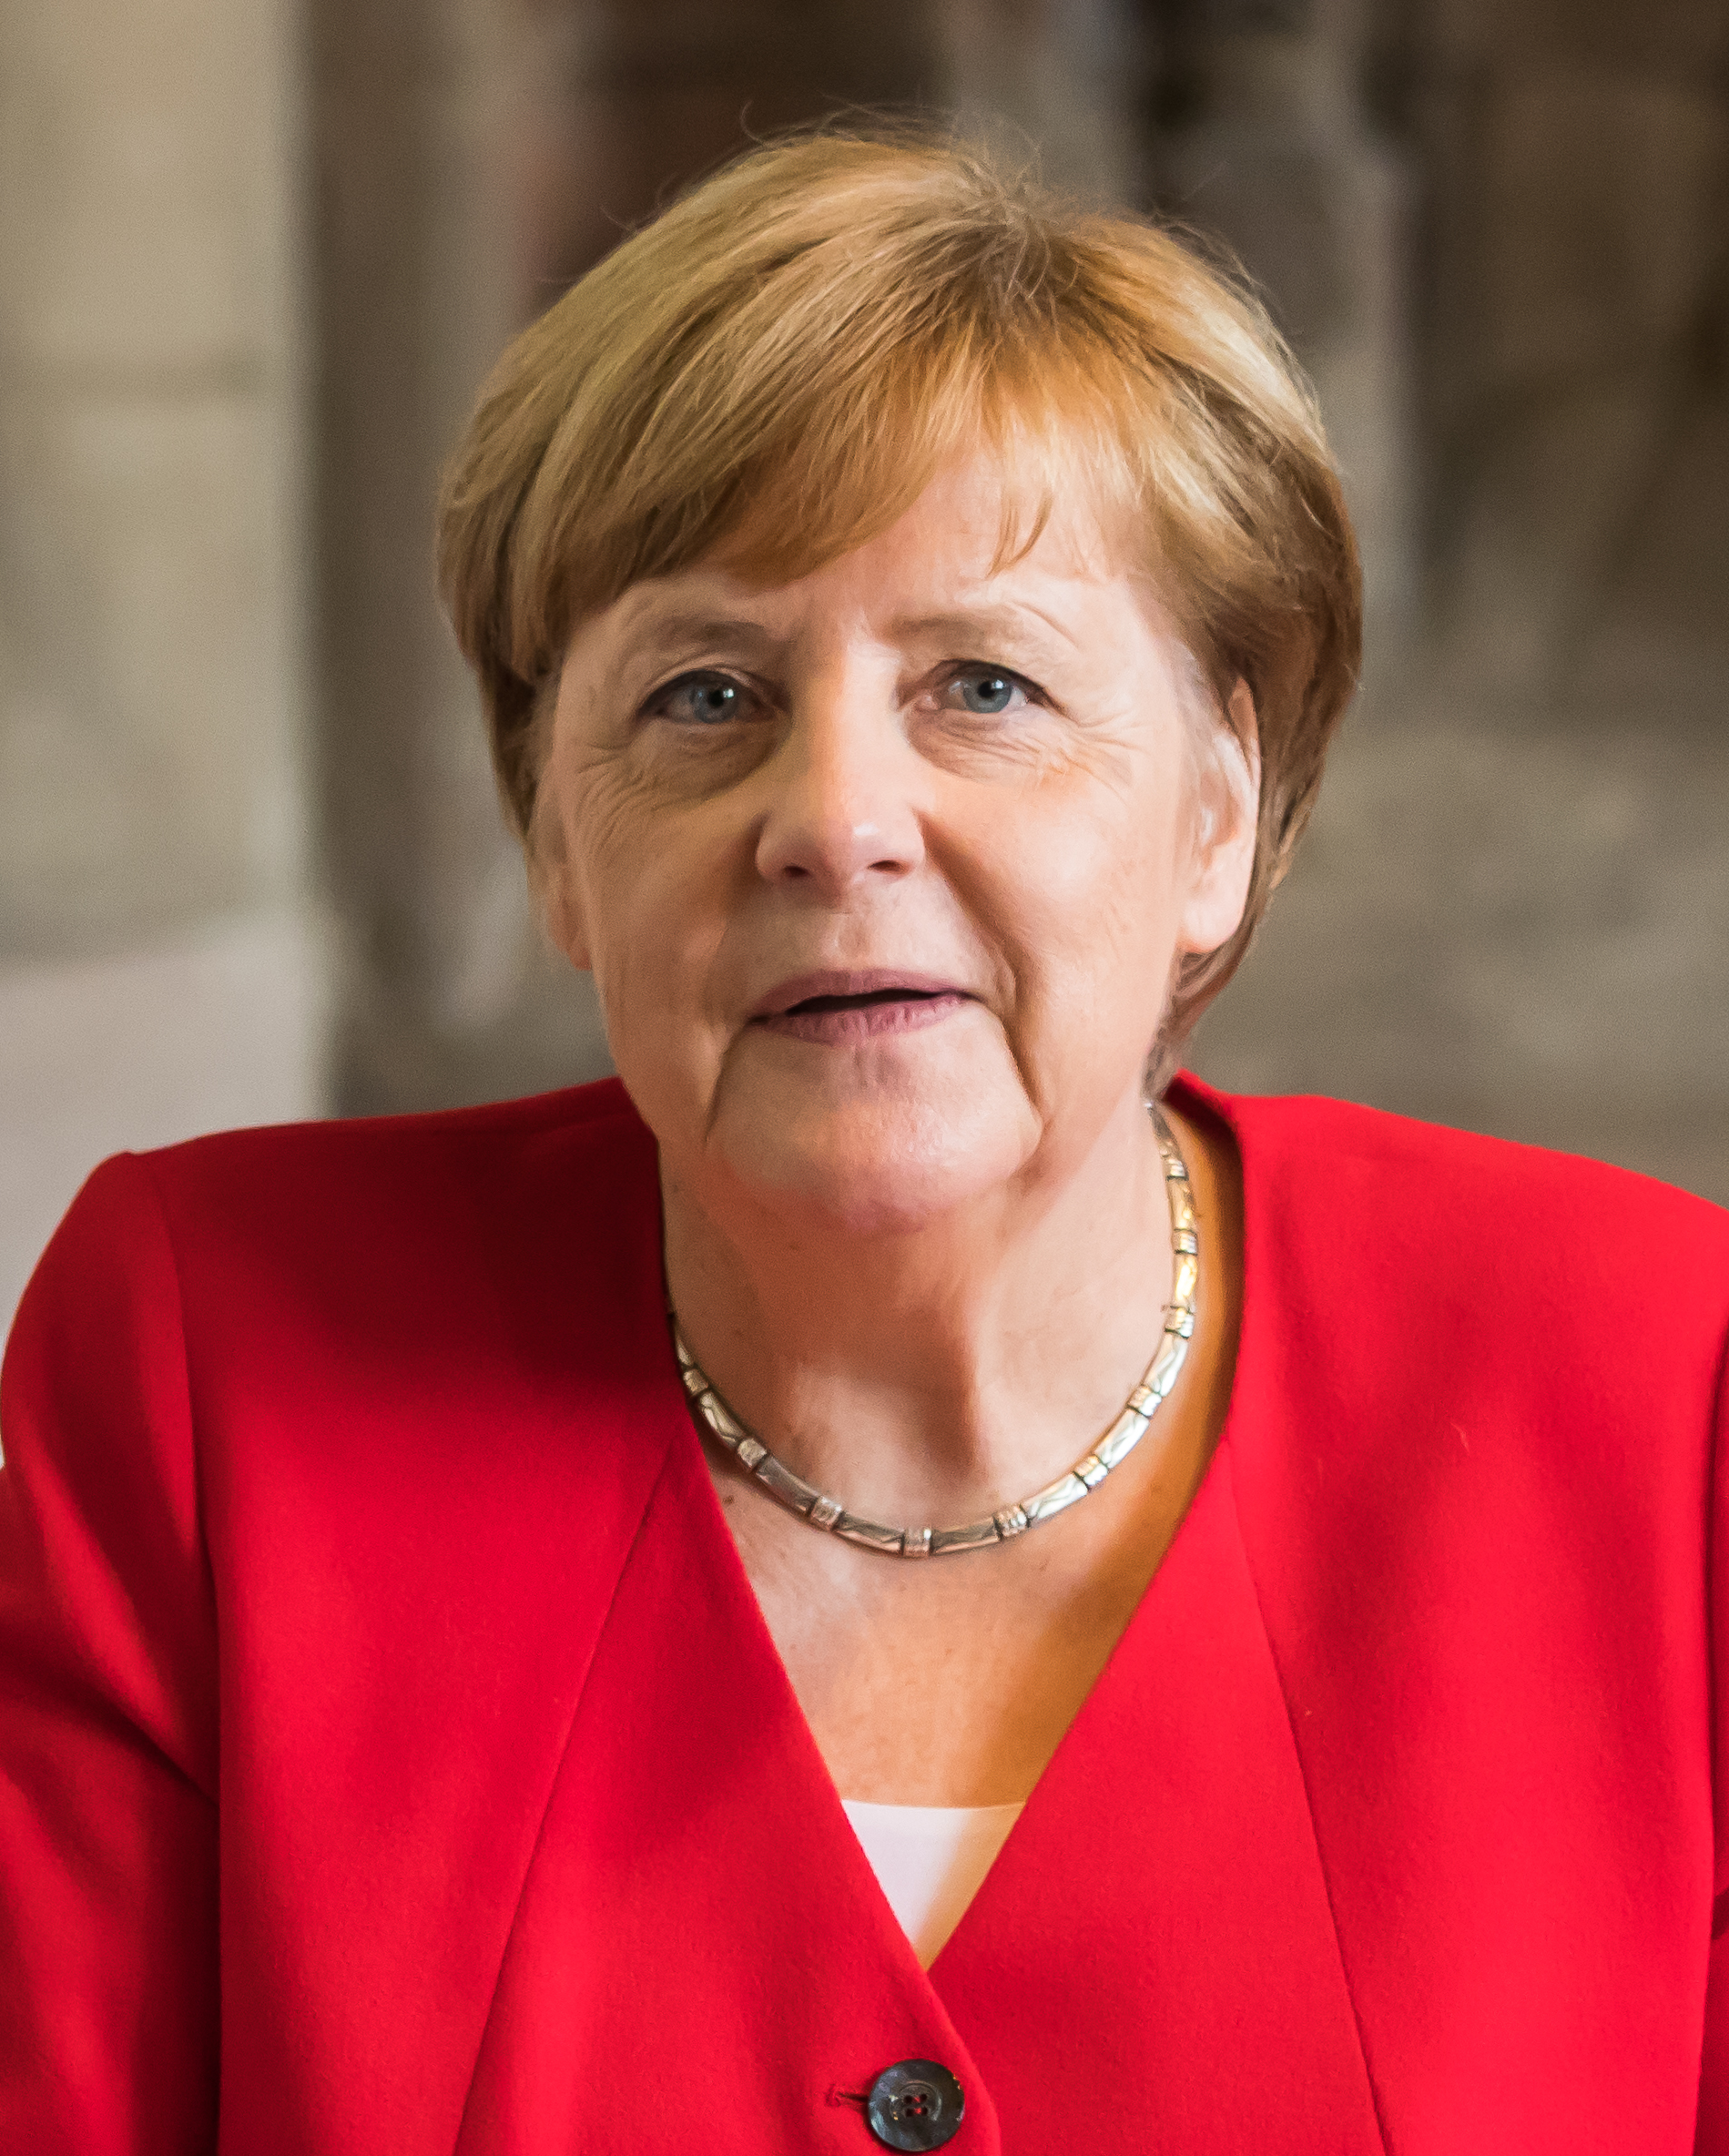 The 66-year old daughter of father Horst Kasner and mother Herlind Kasner Angela Merkel in 2020 photo. Angela Merkel earned a 1.35 million dollar salary - leaving the net worth at 11.5 million in 2020